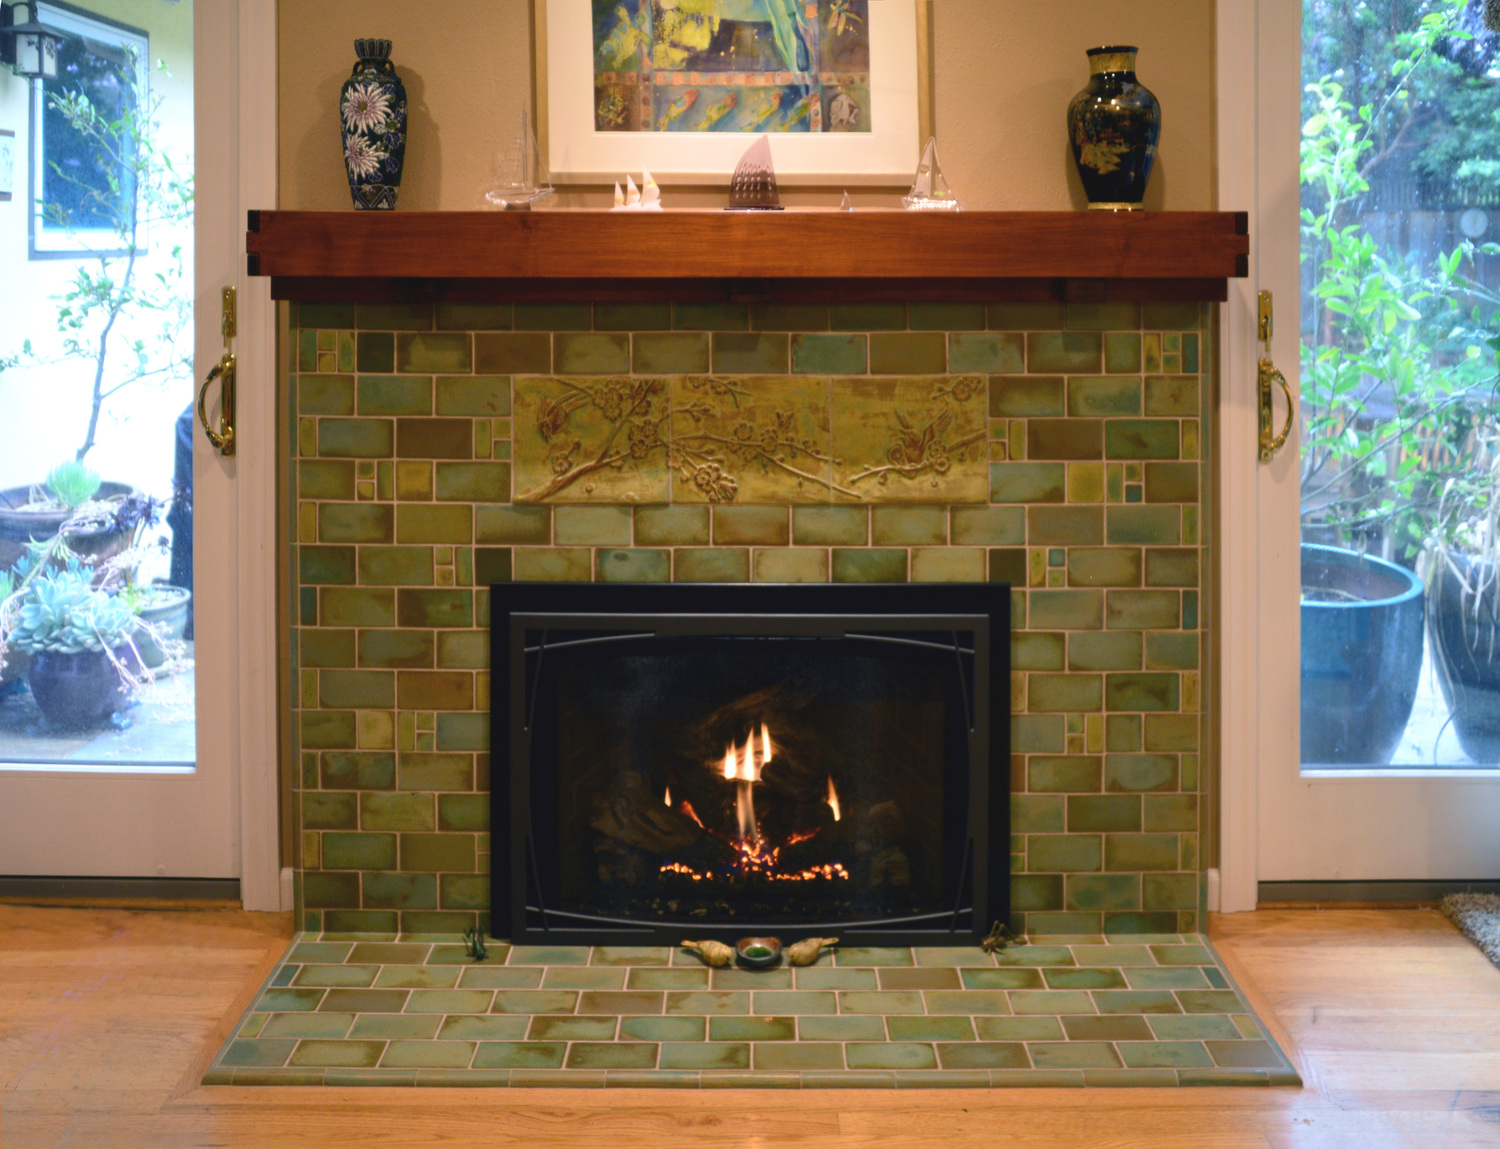 Custom tile and tile design in the Craftsman tradition.